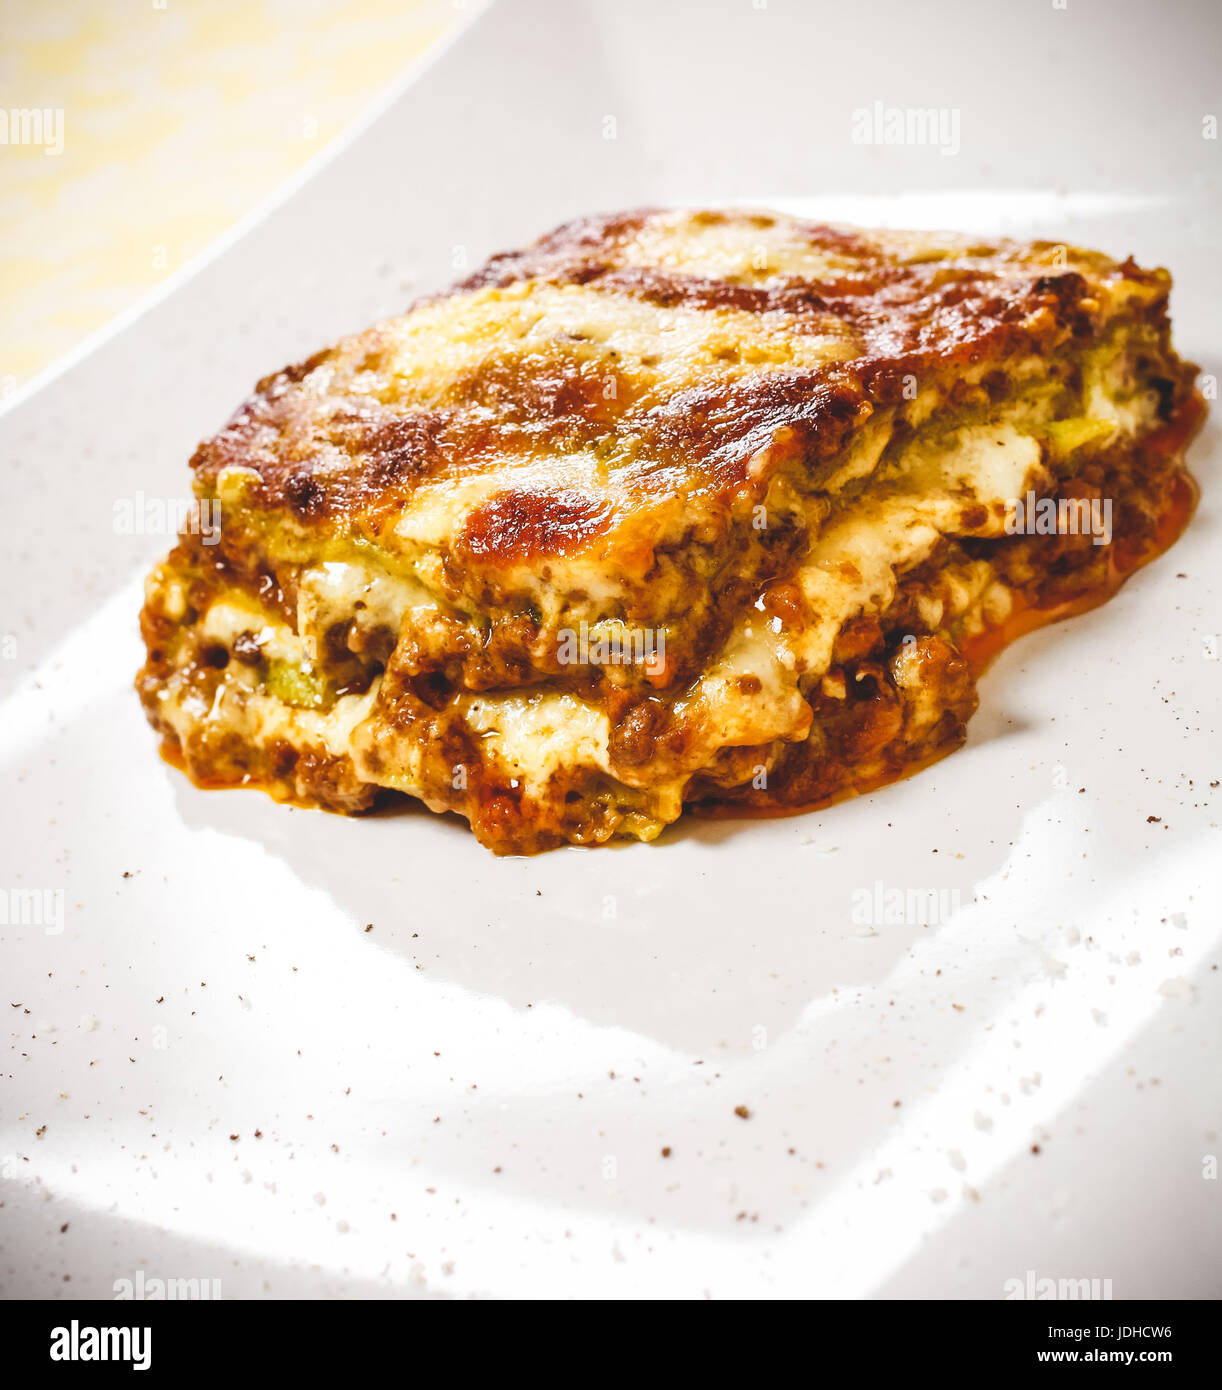 Lasagna bolognese. Typical homemade fresh green pasta cooked in oven. A portion in plate. - Stock Image